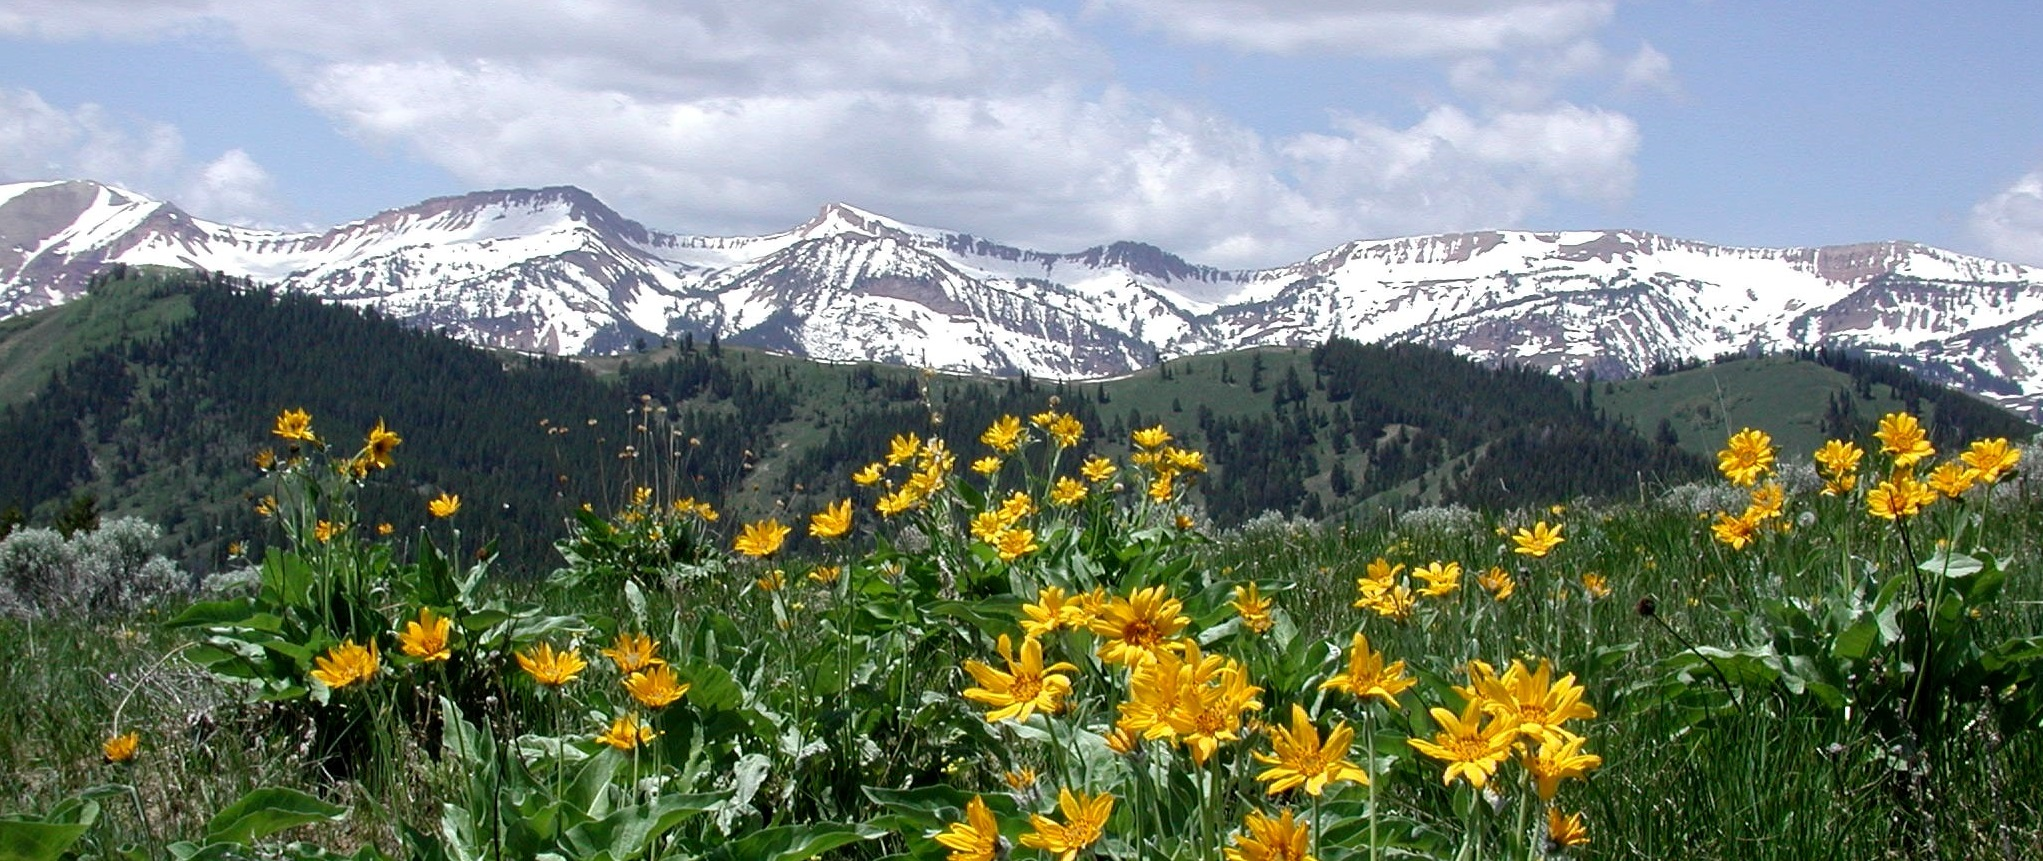 Arrow-leaf Balsam Root flowers on Monument Ridge with snow covered mountain in background.